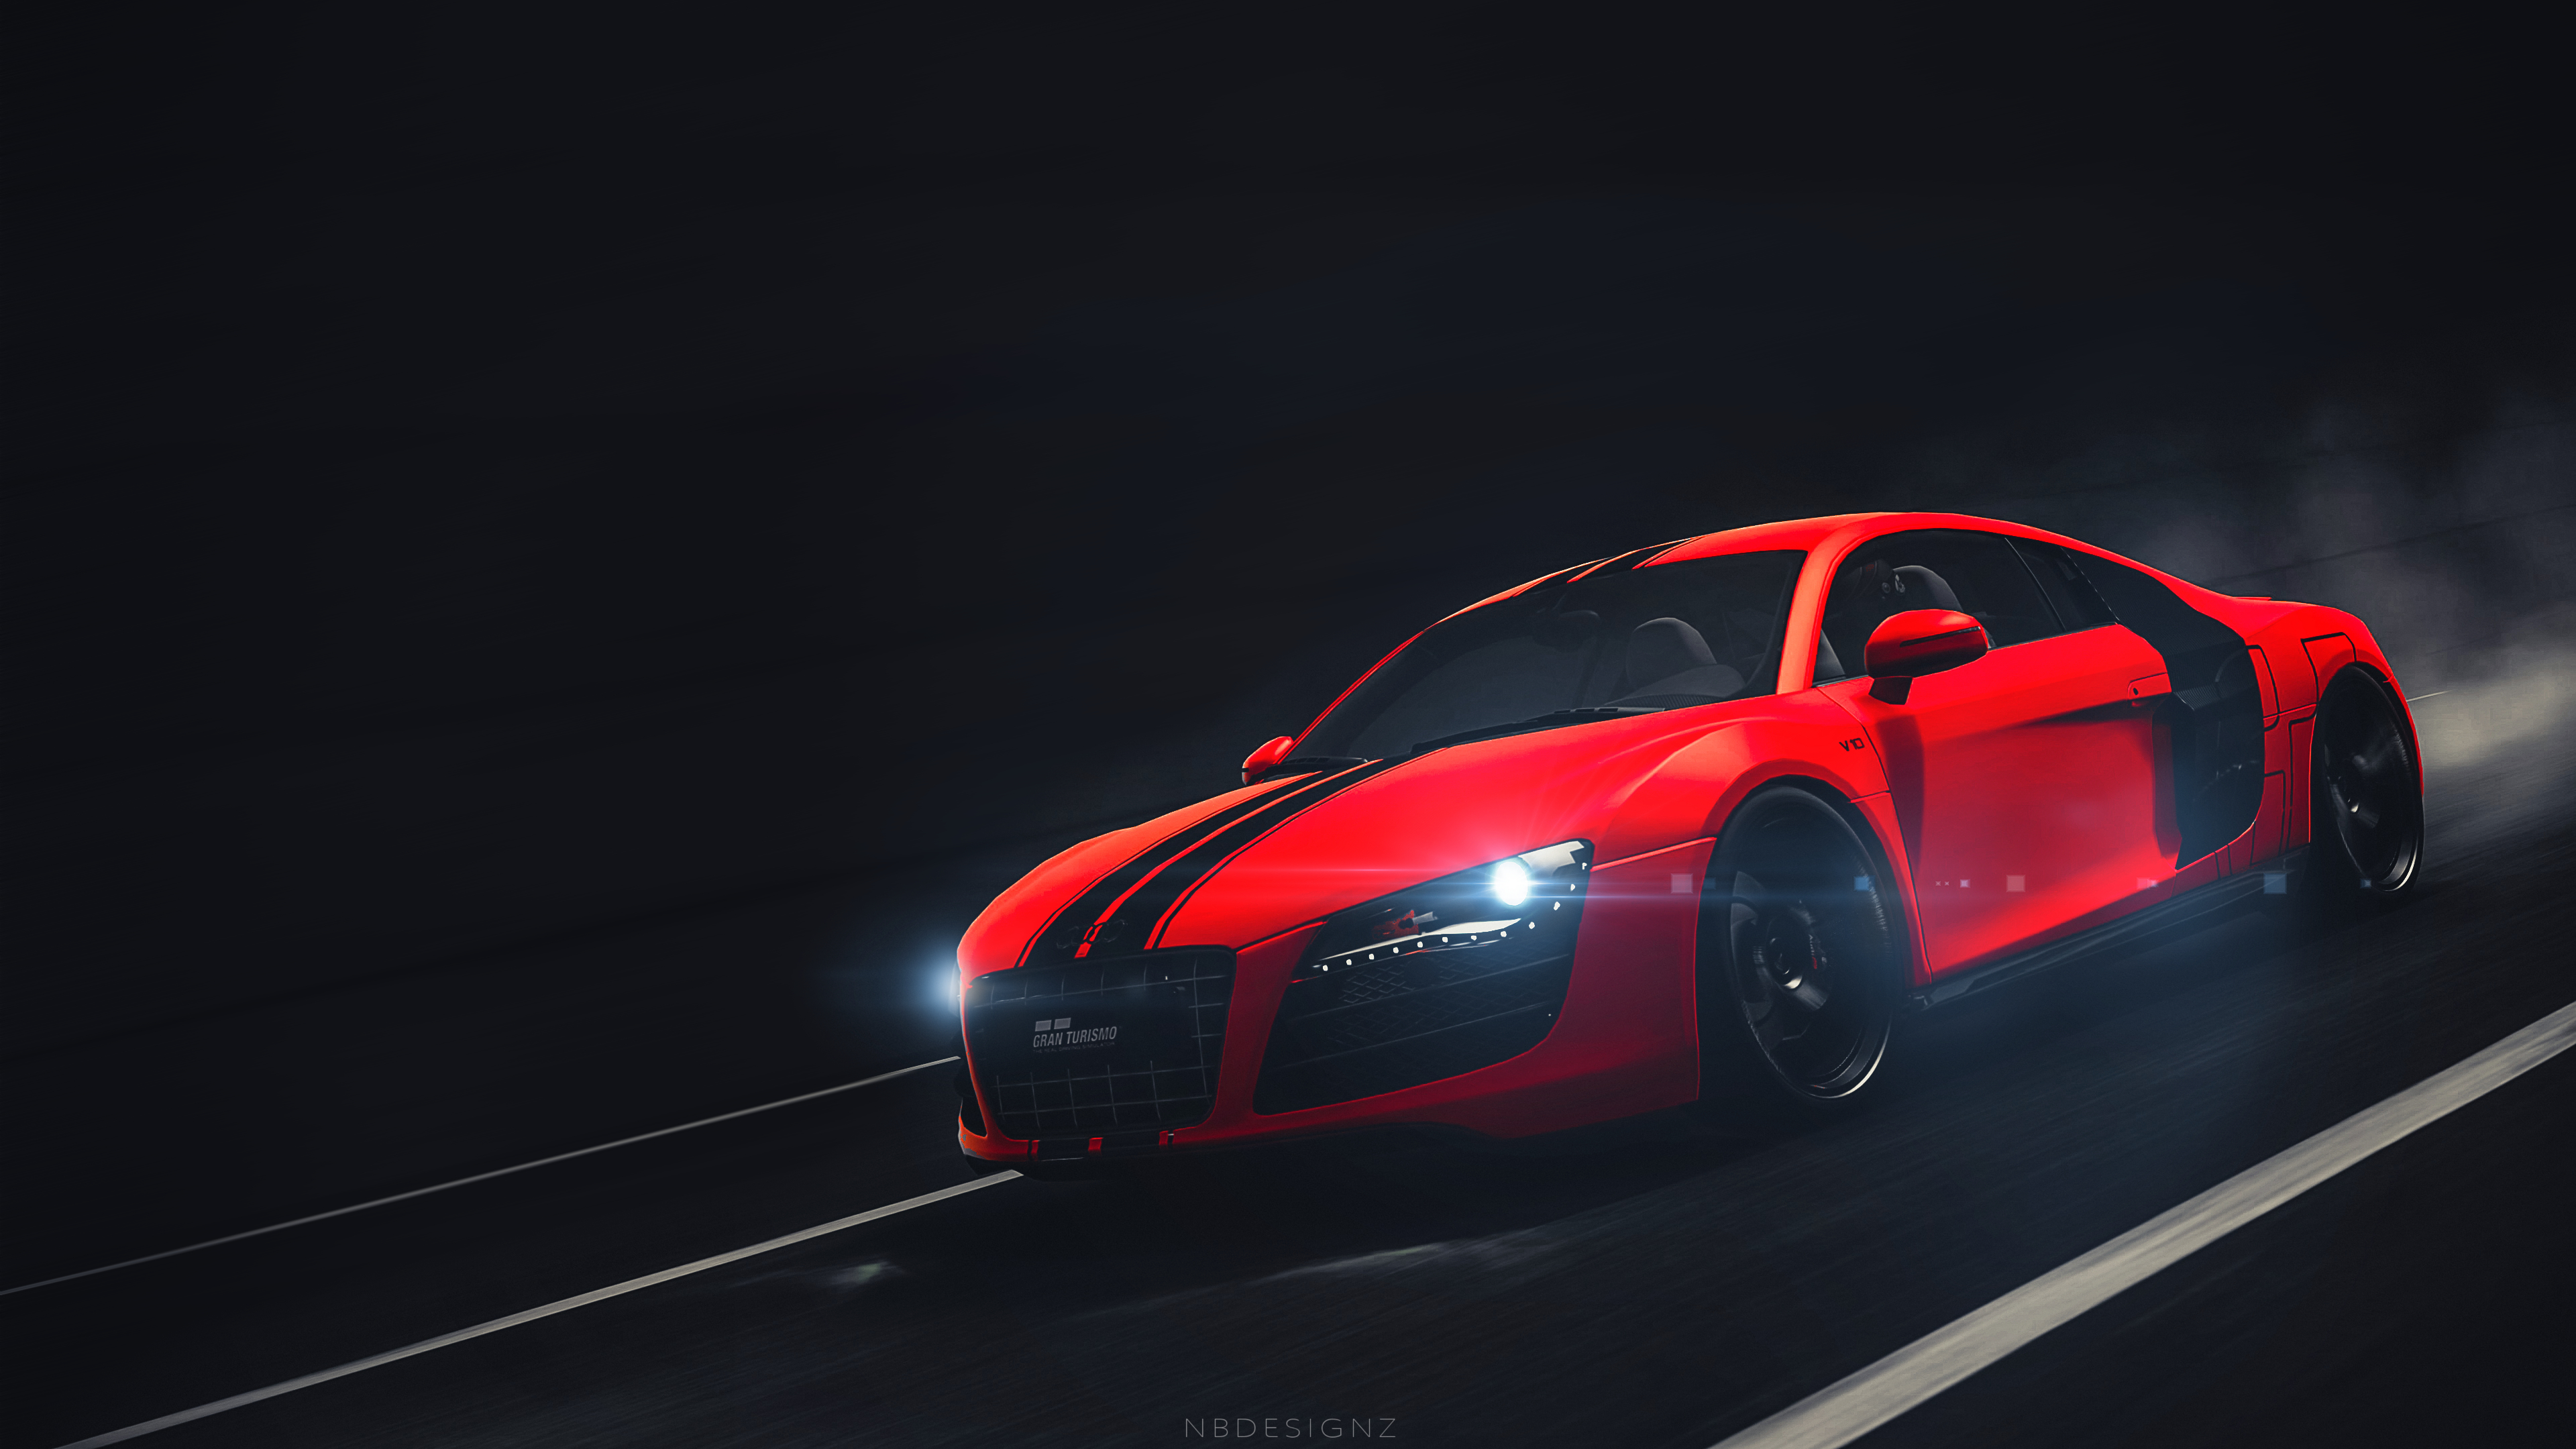 3840x2400 best hd wallpapers of cars, 4k ultra hd 16:10 desktop backgrounds for pc & mac, laptop, tablet, mobile phone. Audi R8 4k Ultra Hd Wallpaper Background Image 3840x2160